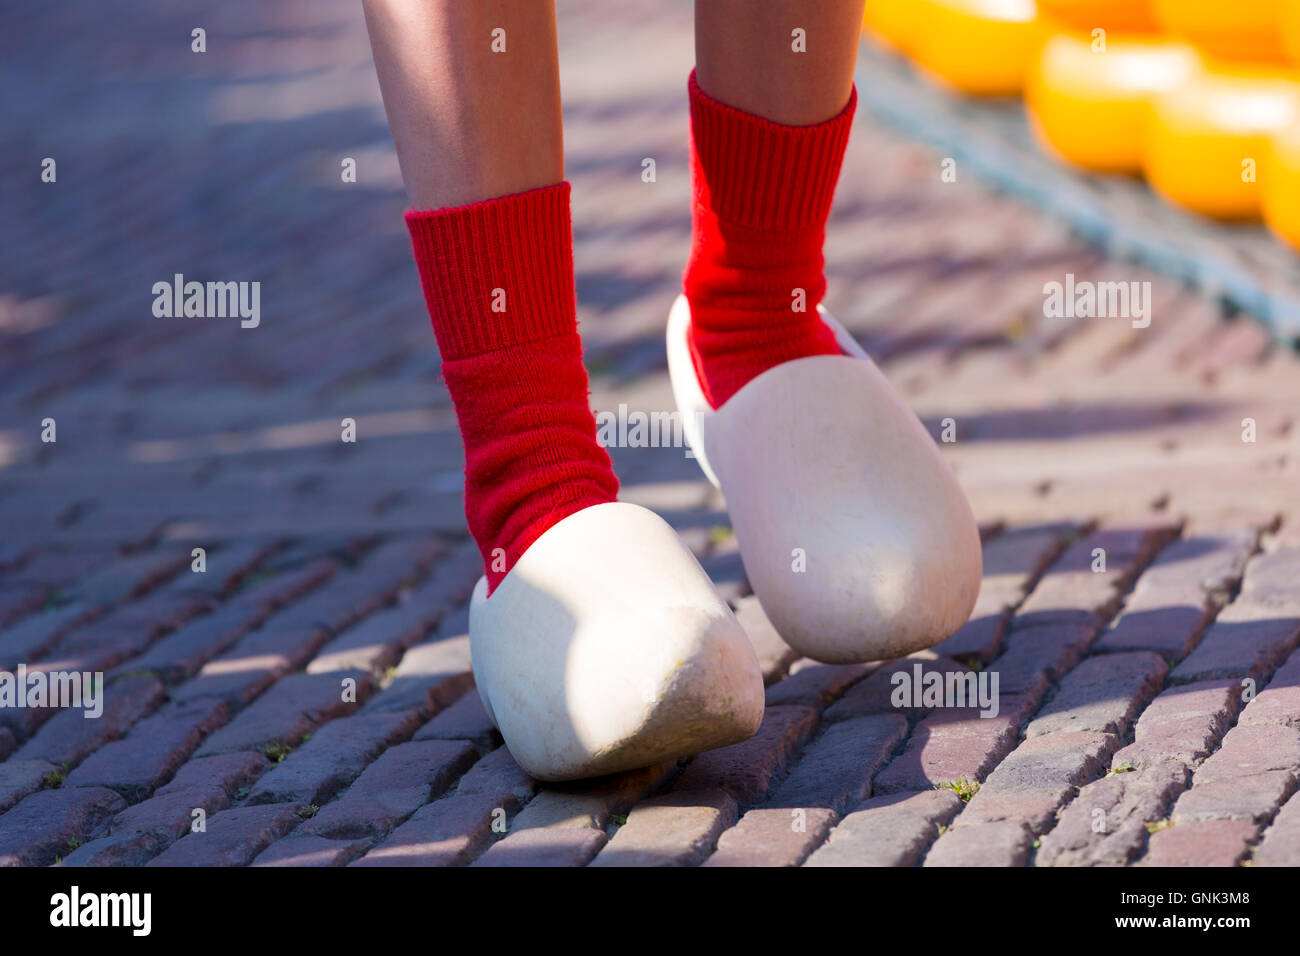 Dutch clogs traditional shoes and socks worn by woman Kaasmeisje, Alkmaar cheese market, The Netherlands Stock Photo